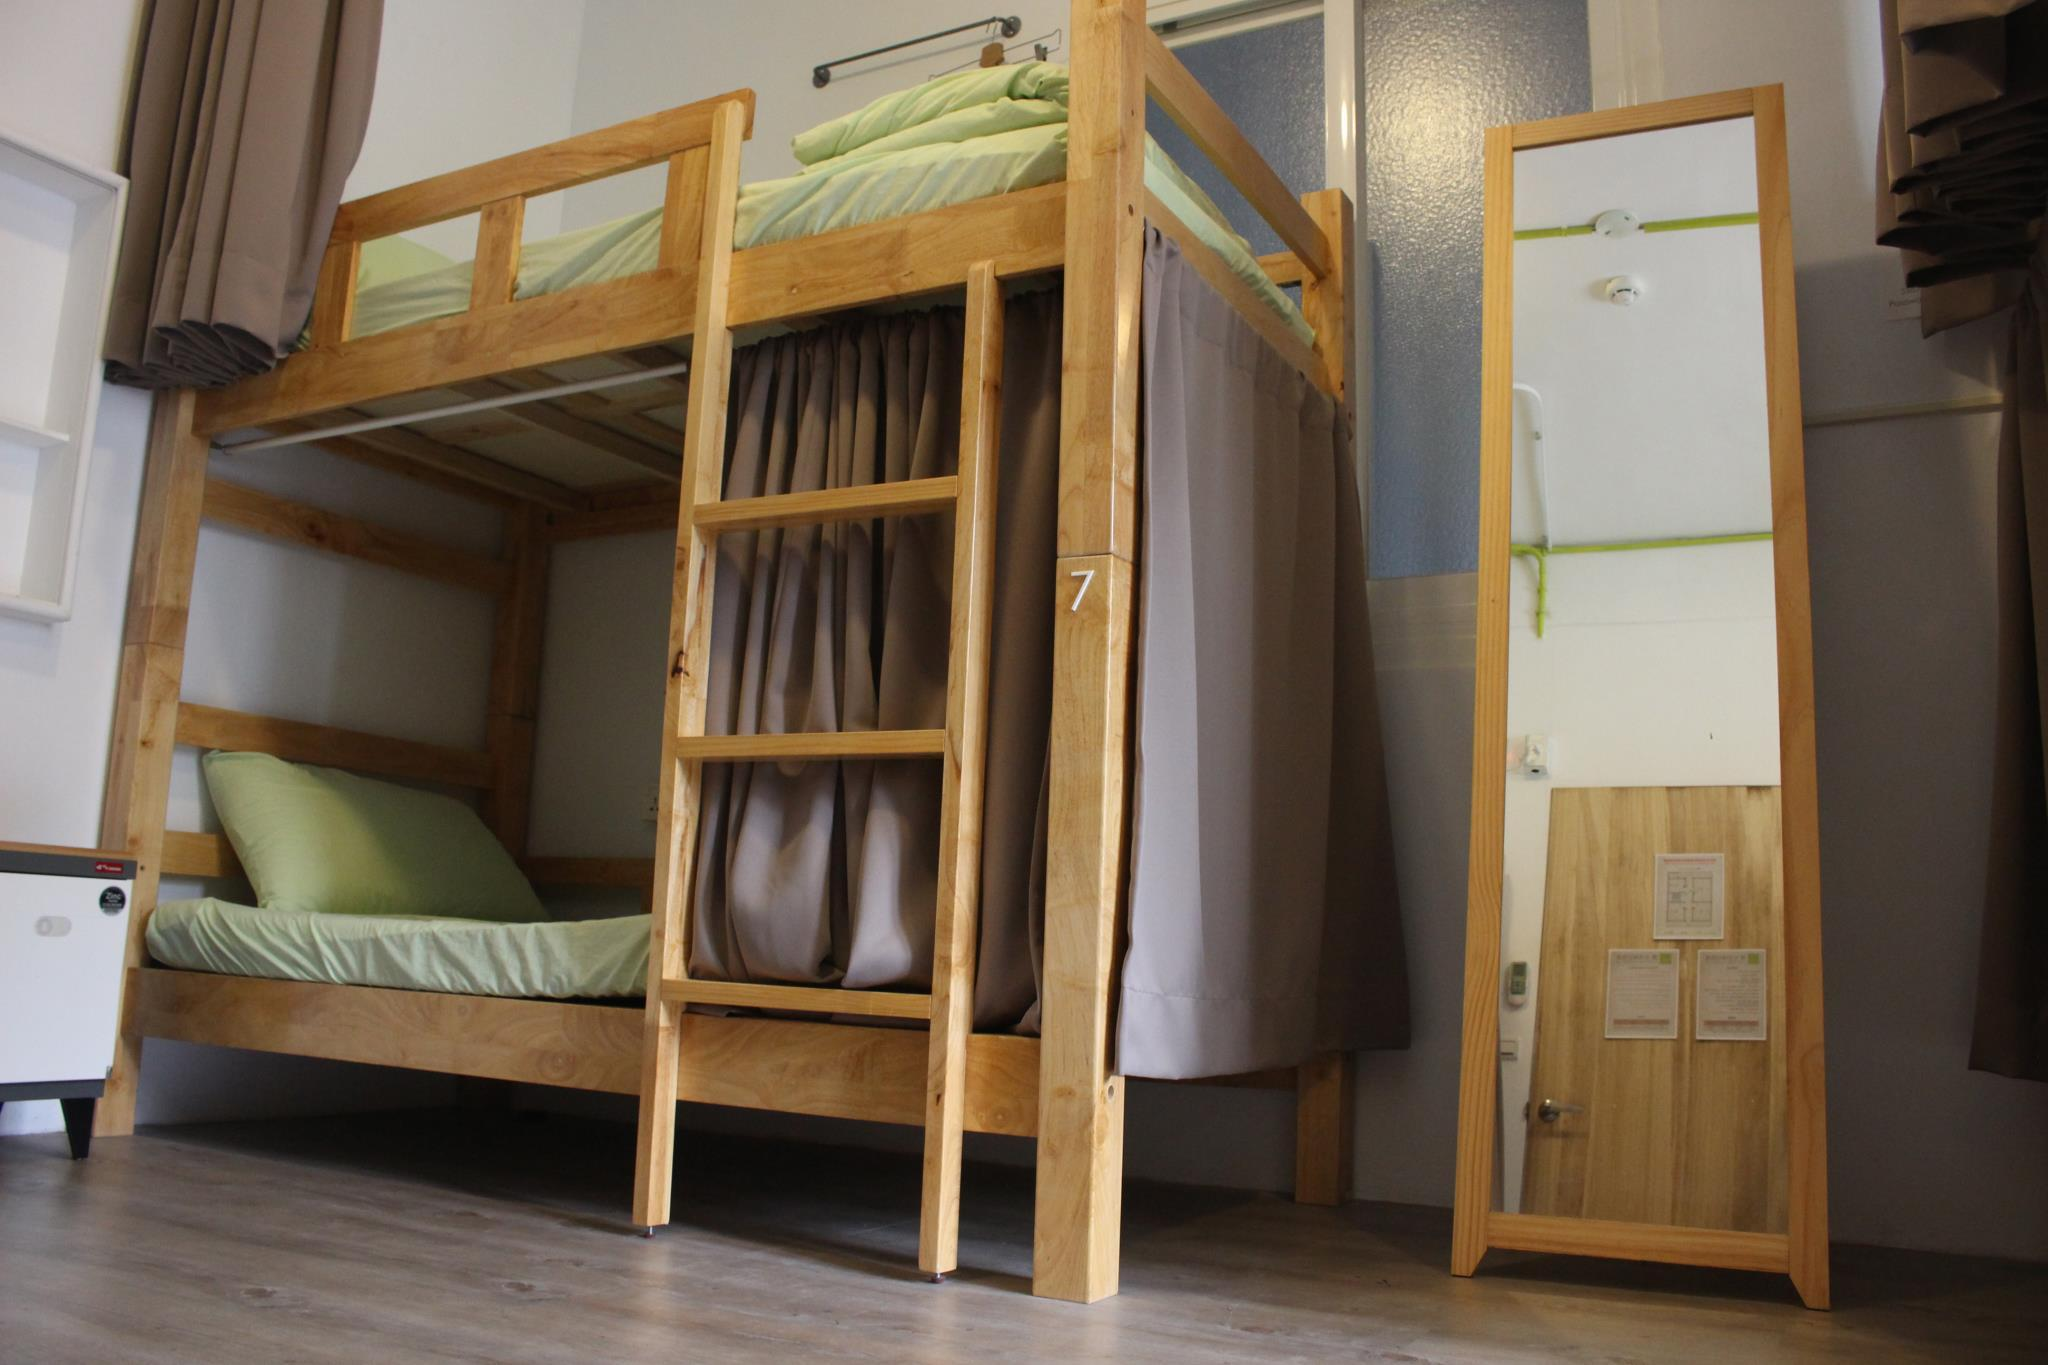 1 Person im 8-Bett-Schlafsaal mit gemeinsamem Schlafzimmer - nur für Frauen (1 Person in 8-Bed Dormitory with Shared Bedroom - Female Only)